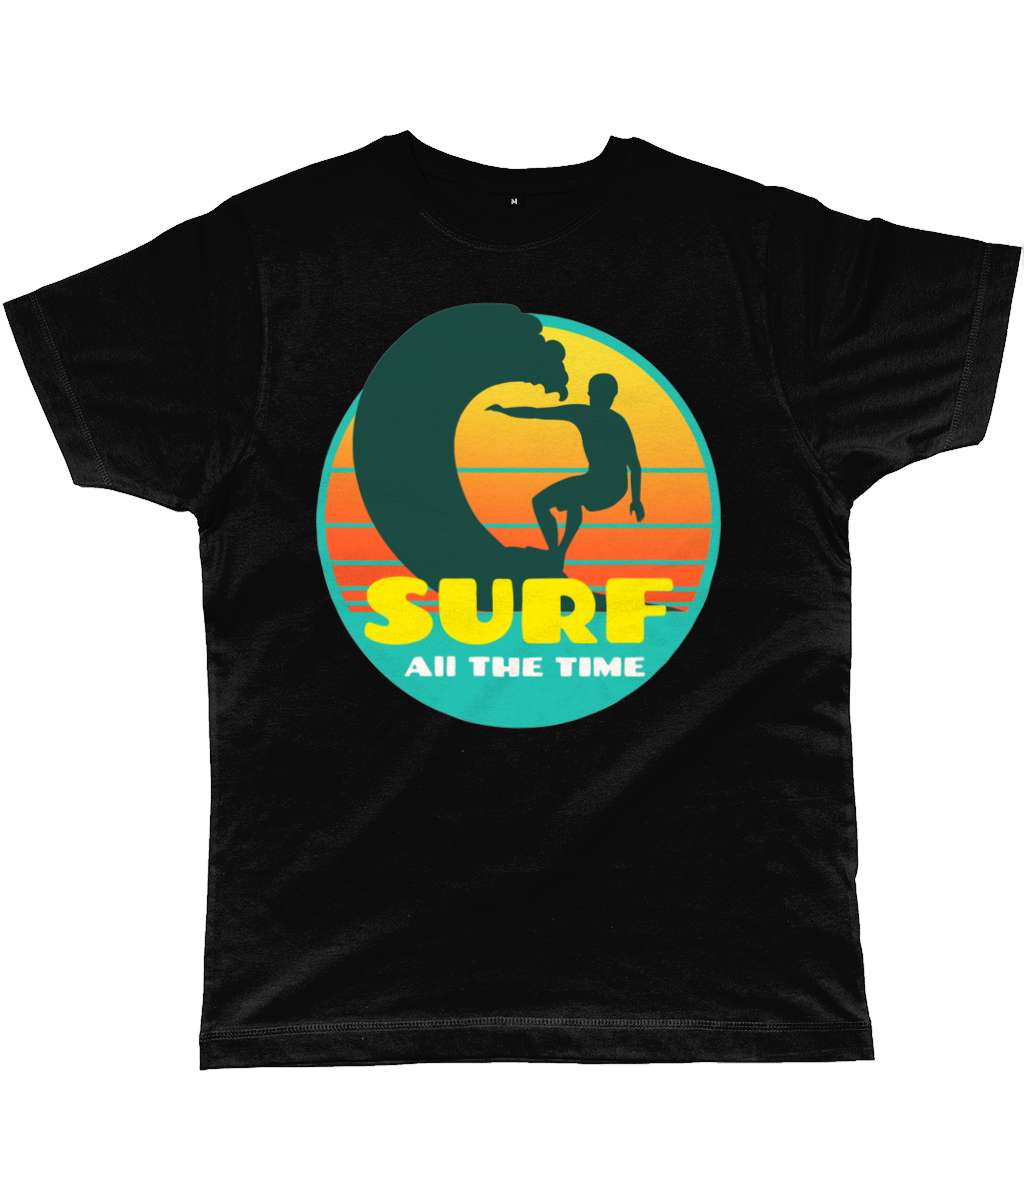 Retro Surf All the Time Classic Cut Men's T-Shirt